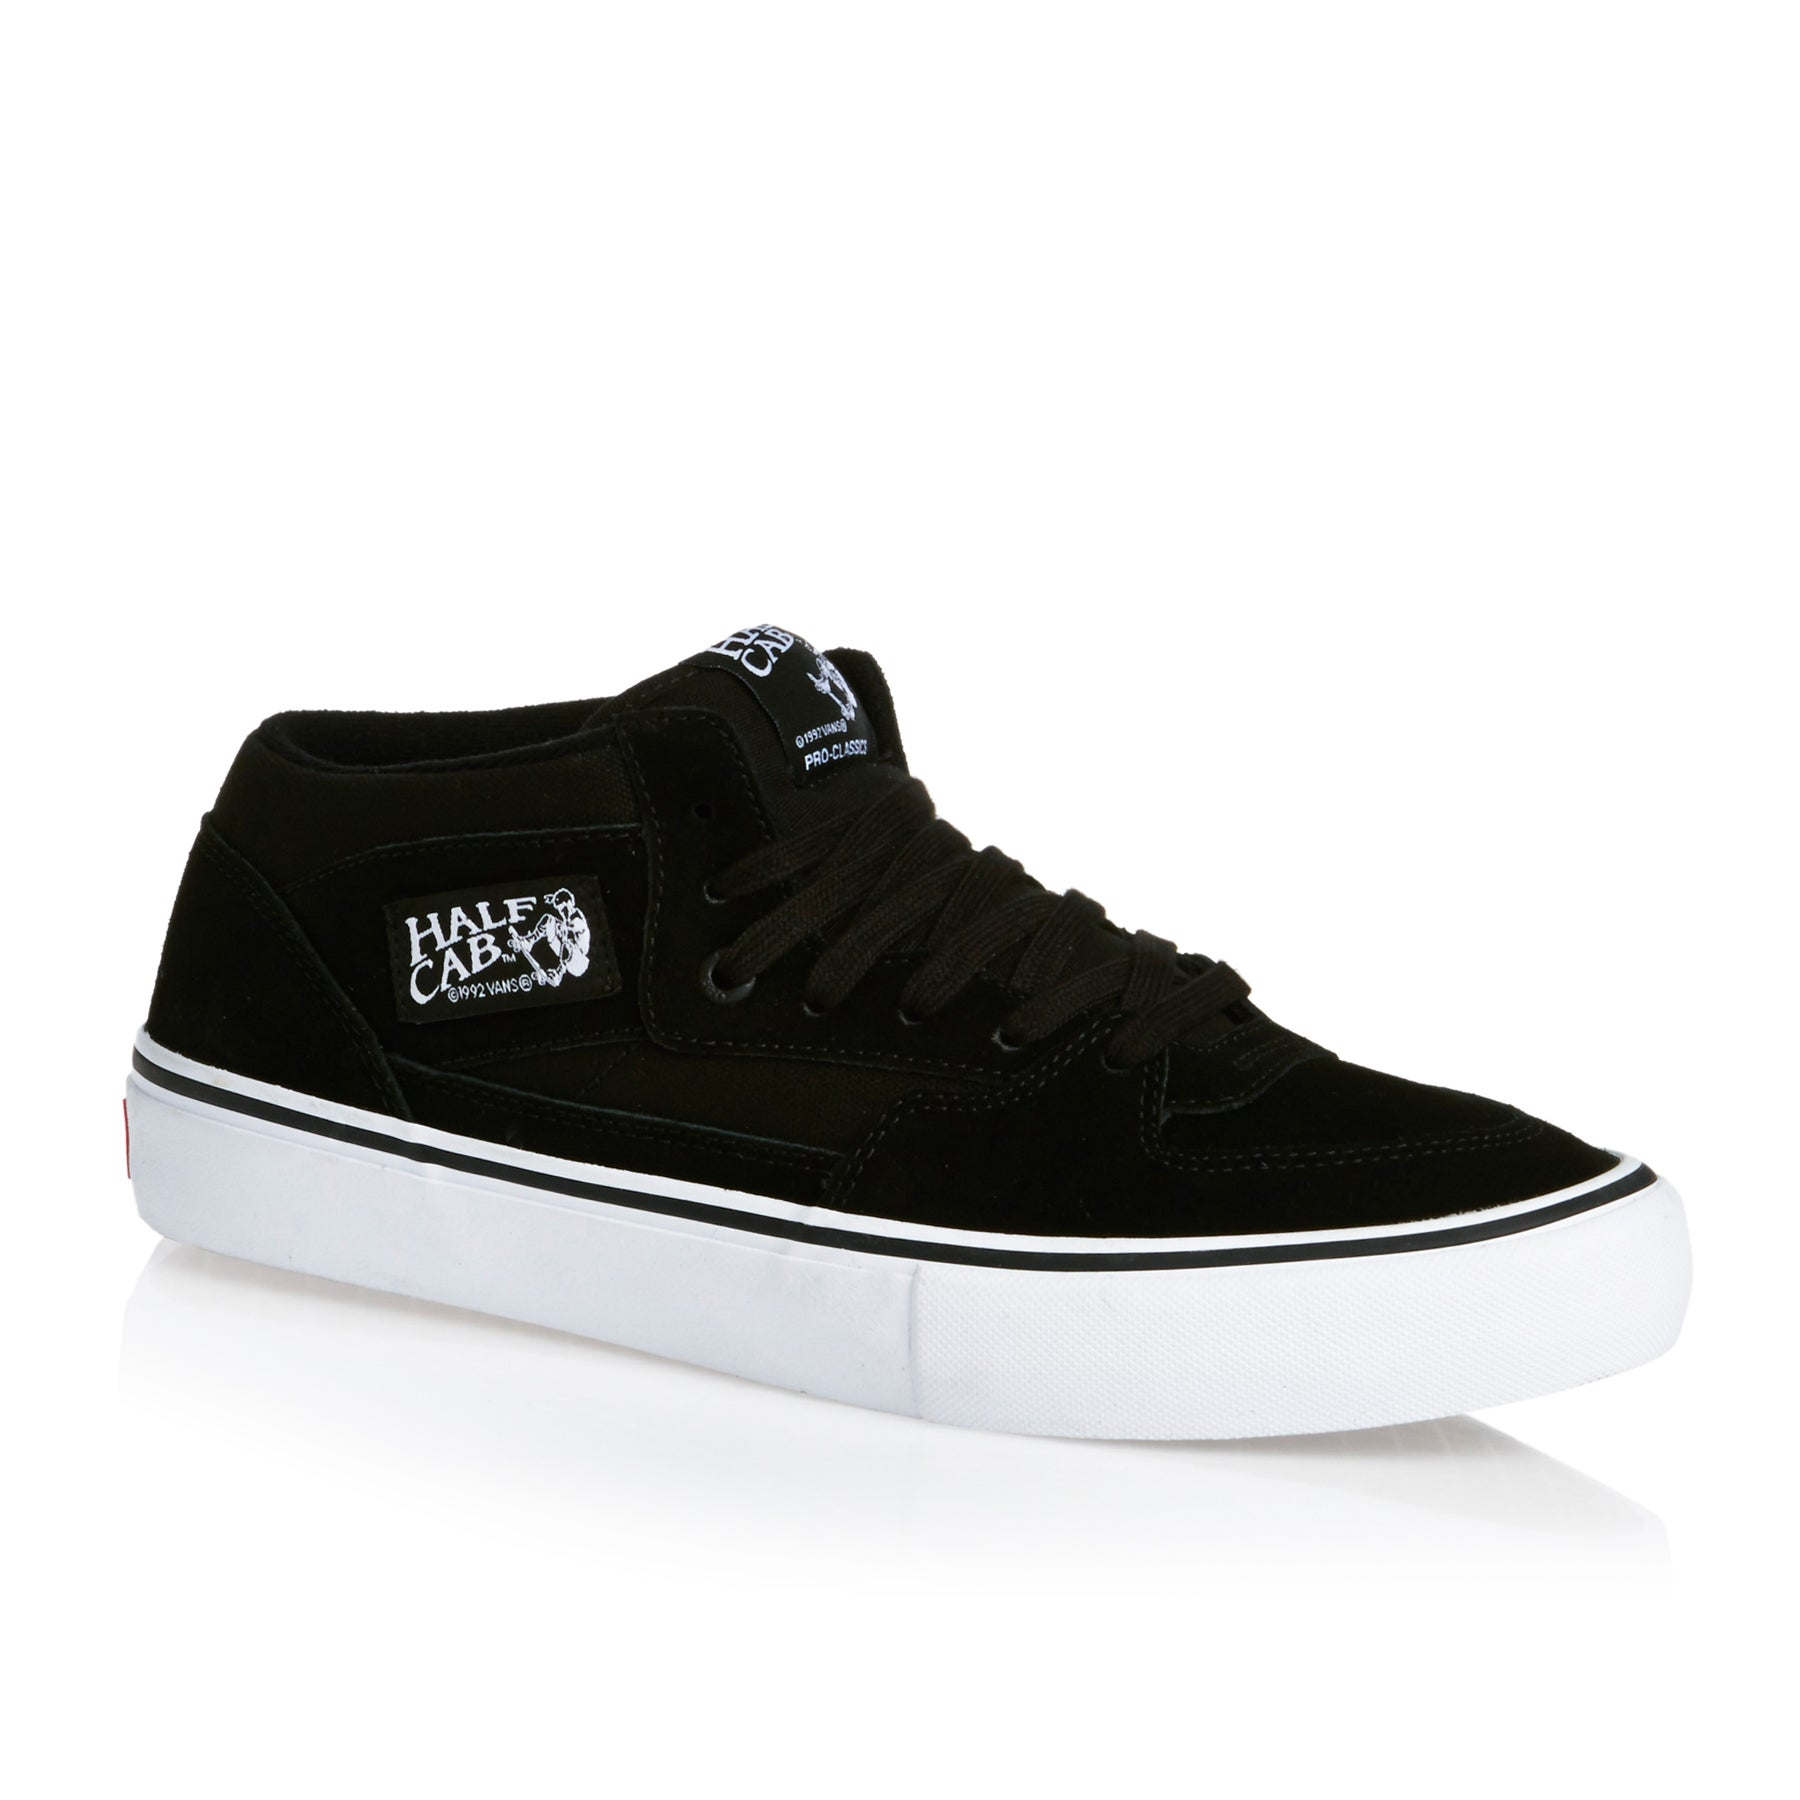 59047cfdfbf019 Vans Half Cab Pro Shoes available from Surfdome